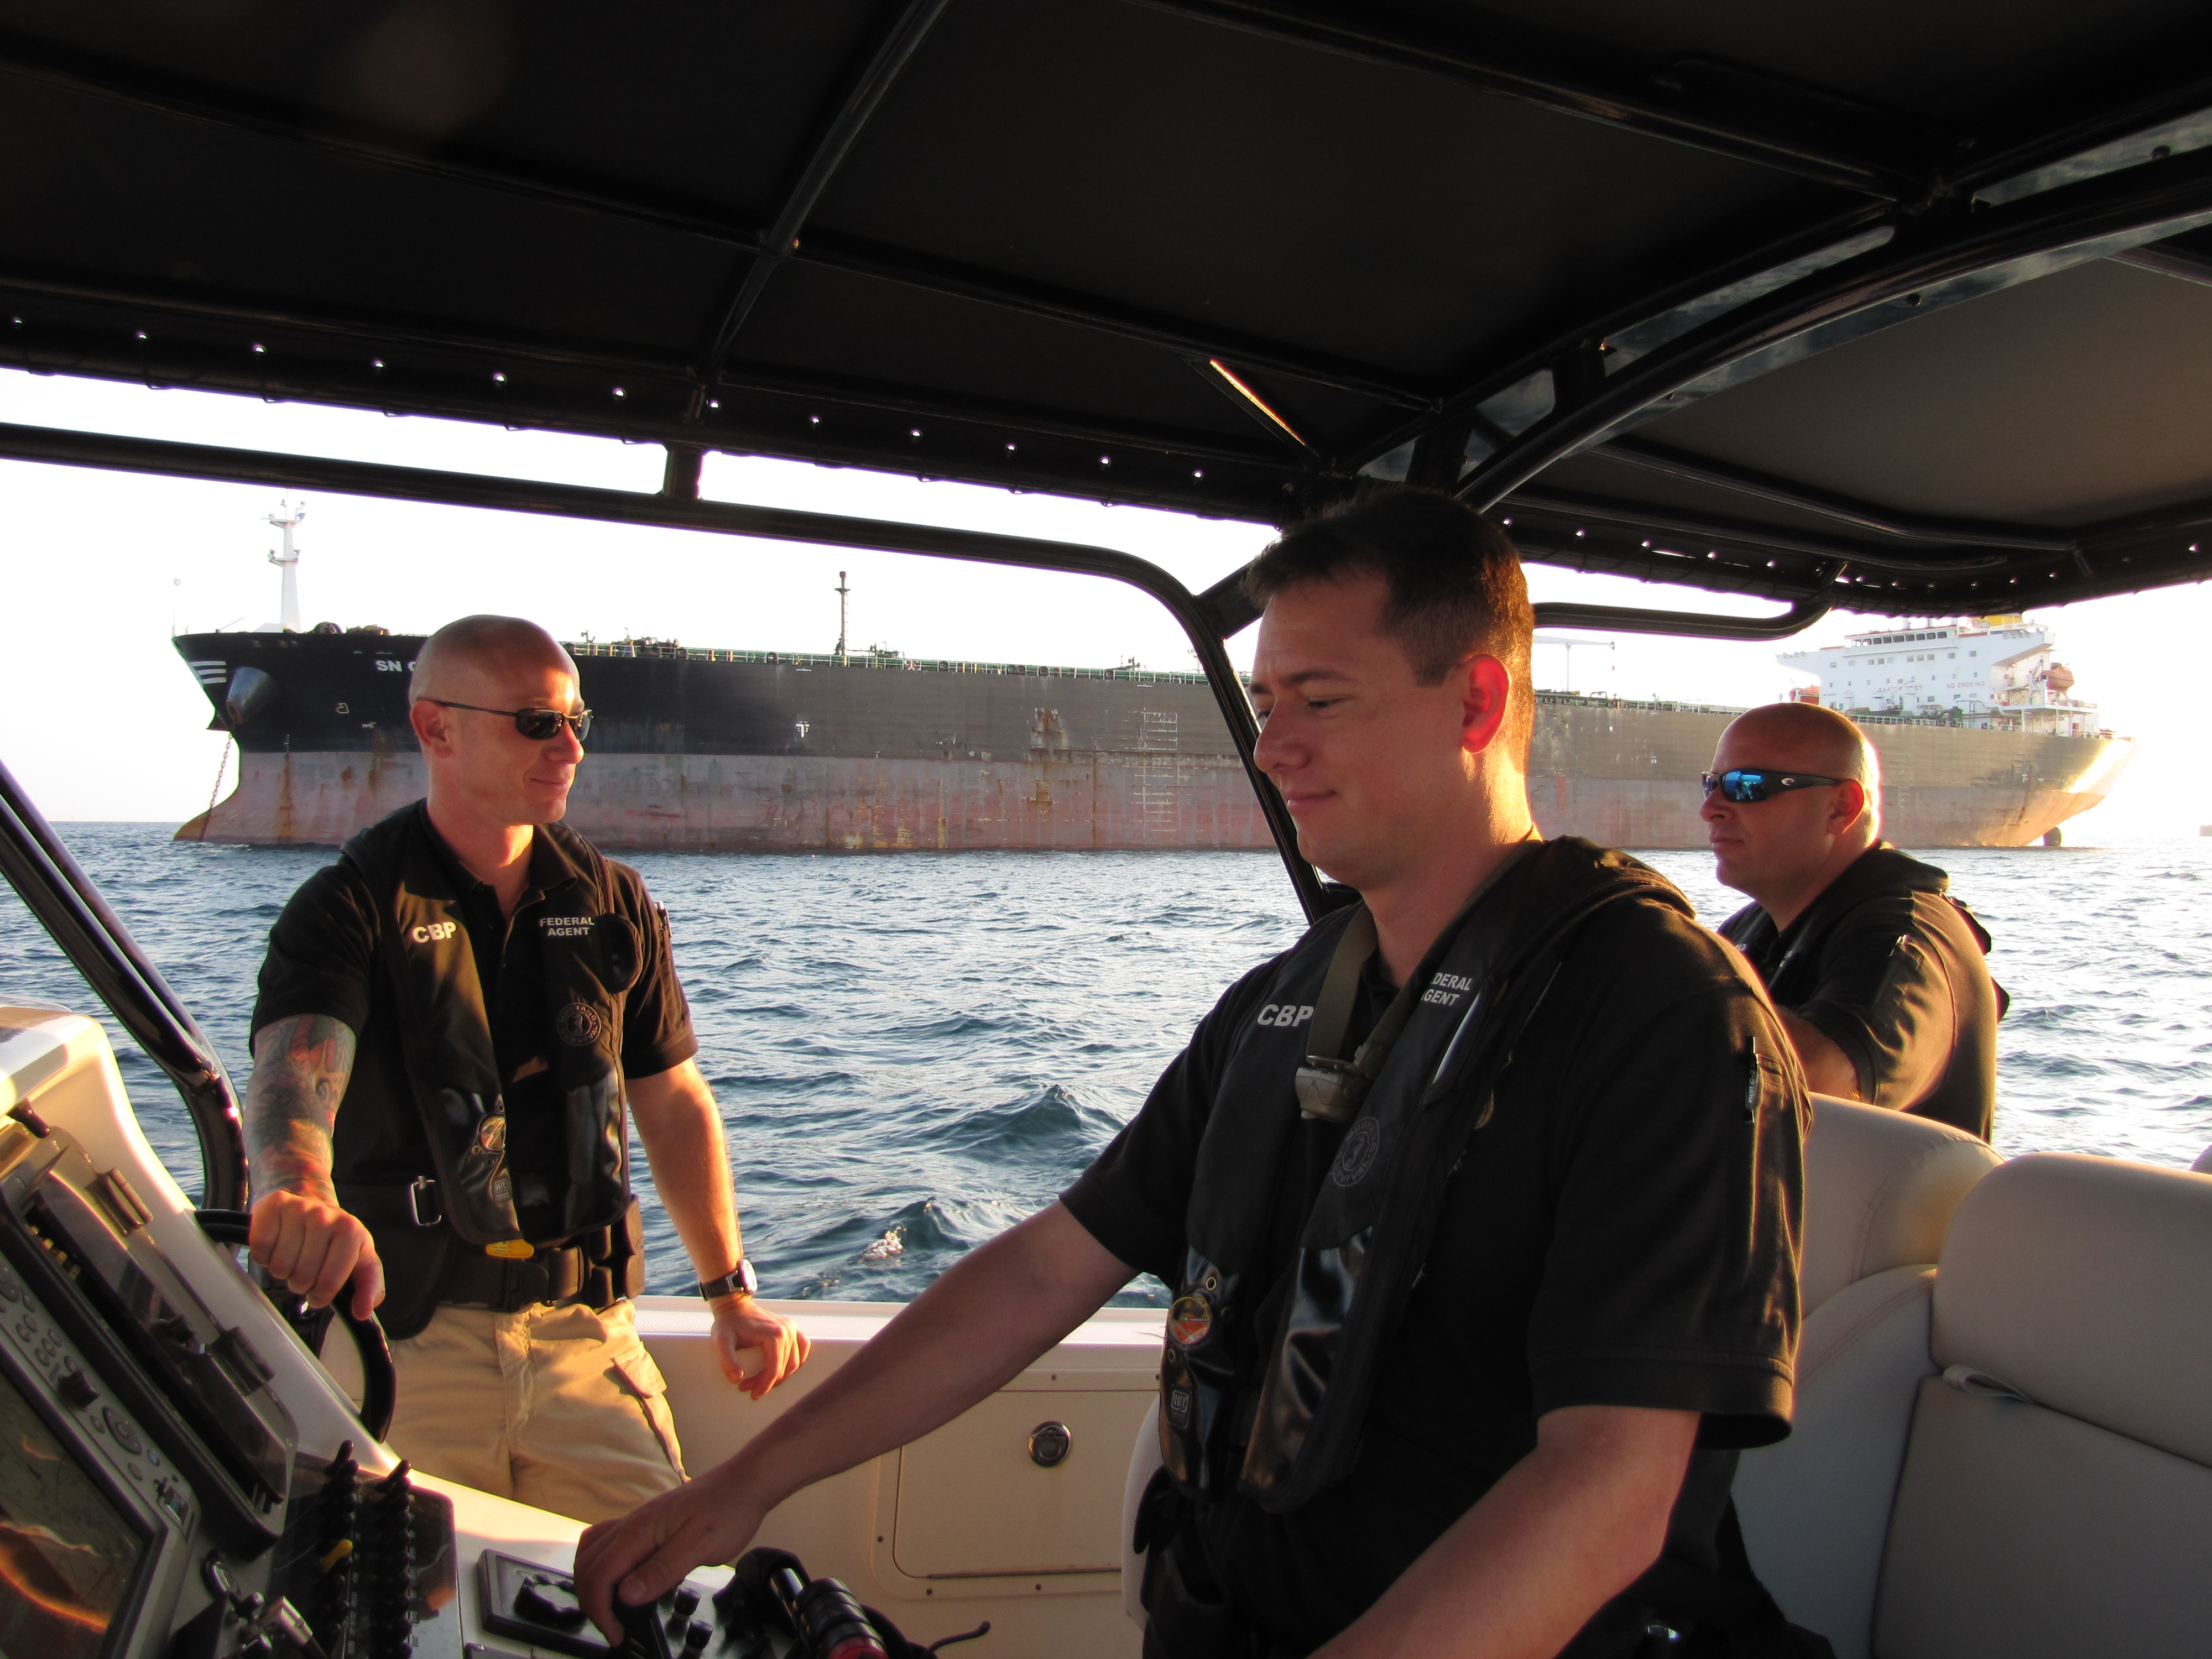 Homeland Security Marine Interdiction Agents on patrol. Behind them is an oil tanker in the Gulf of Mexico. The agents have the authority to inspect any watercraft they deem suspicious.